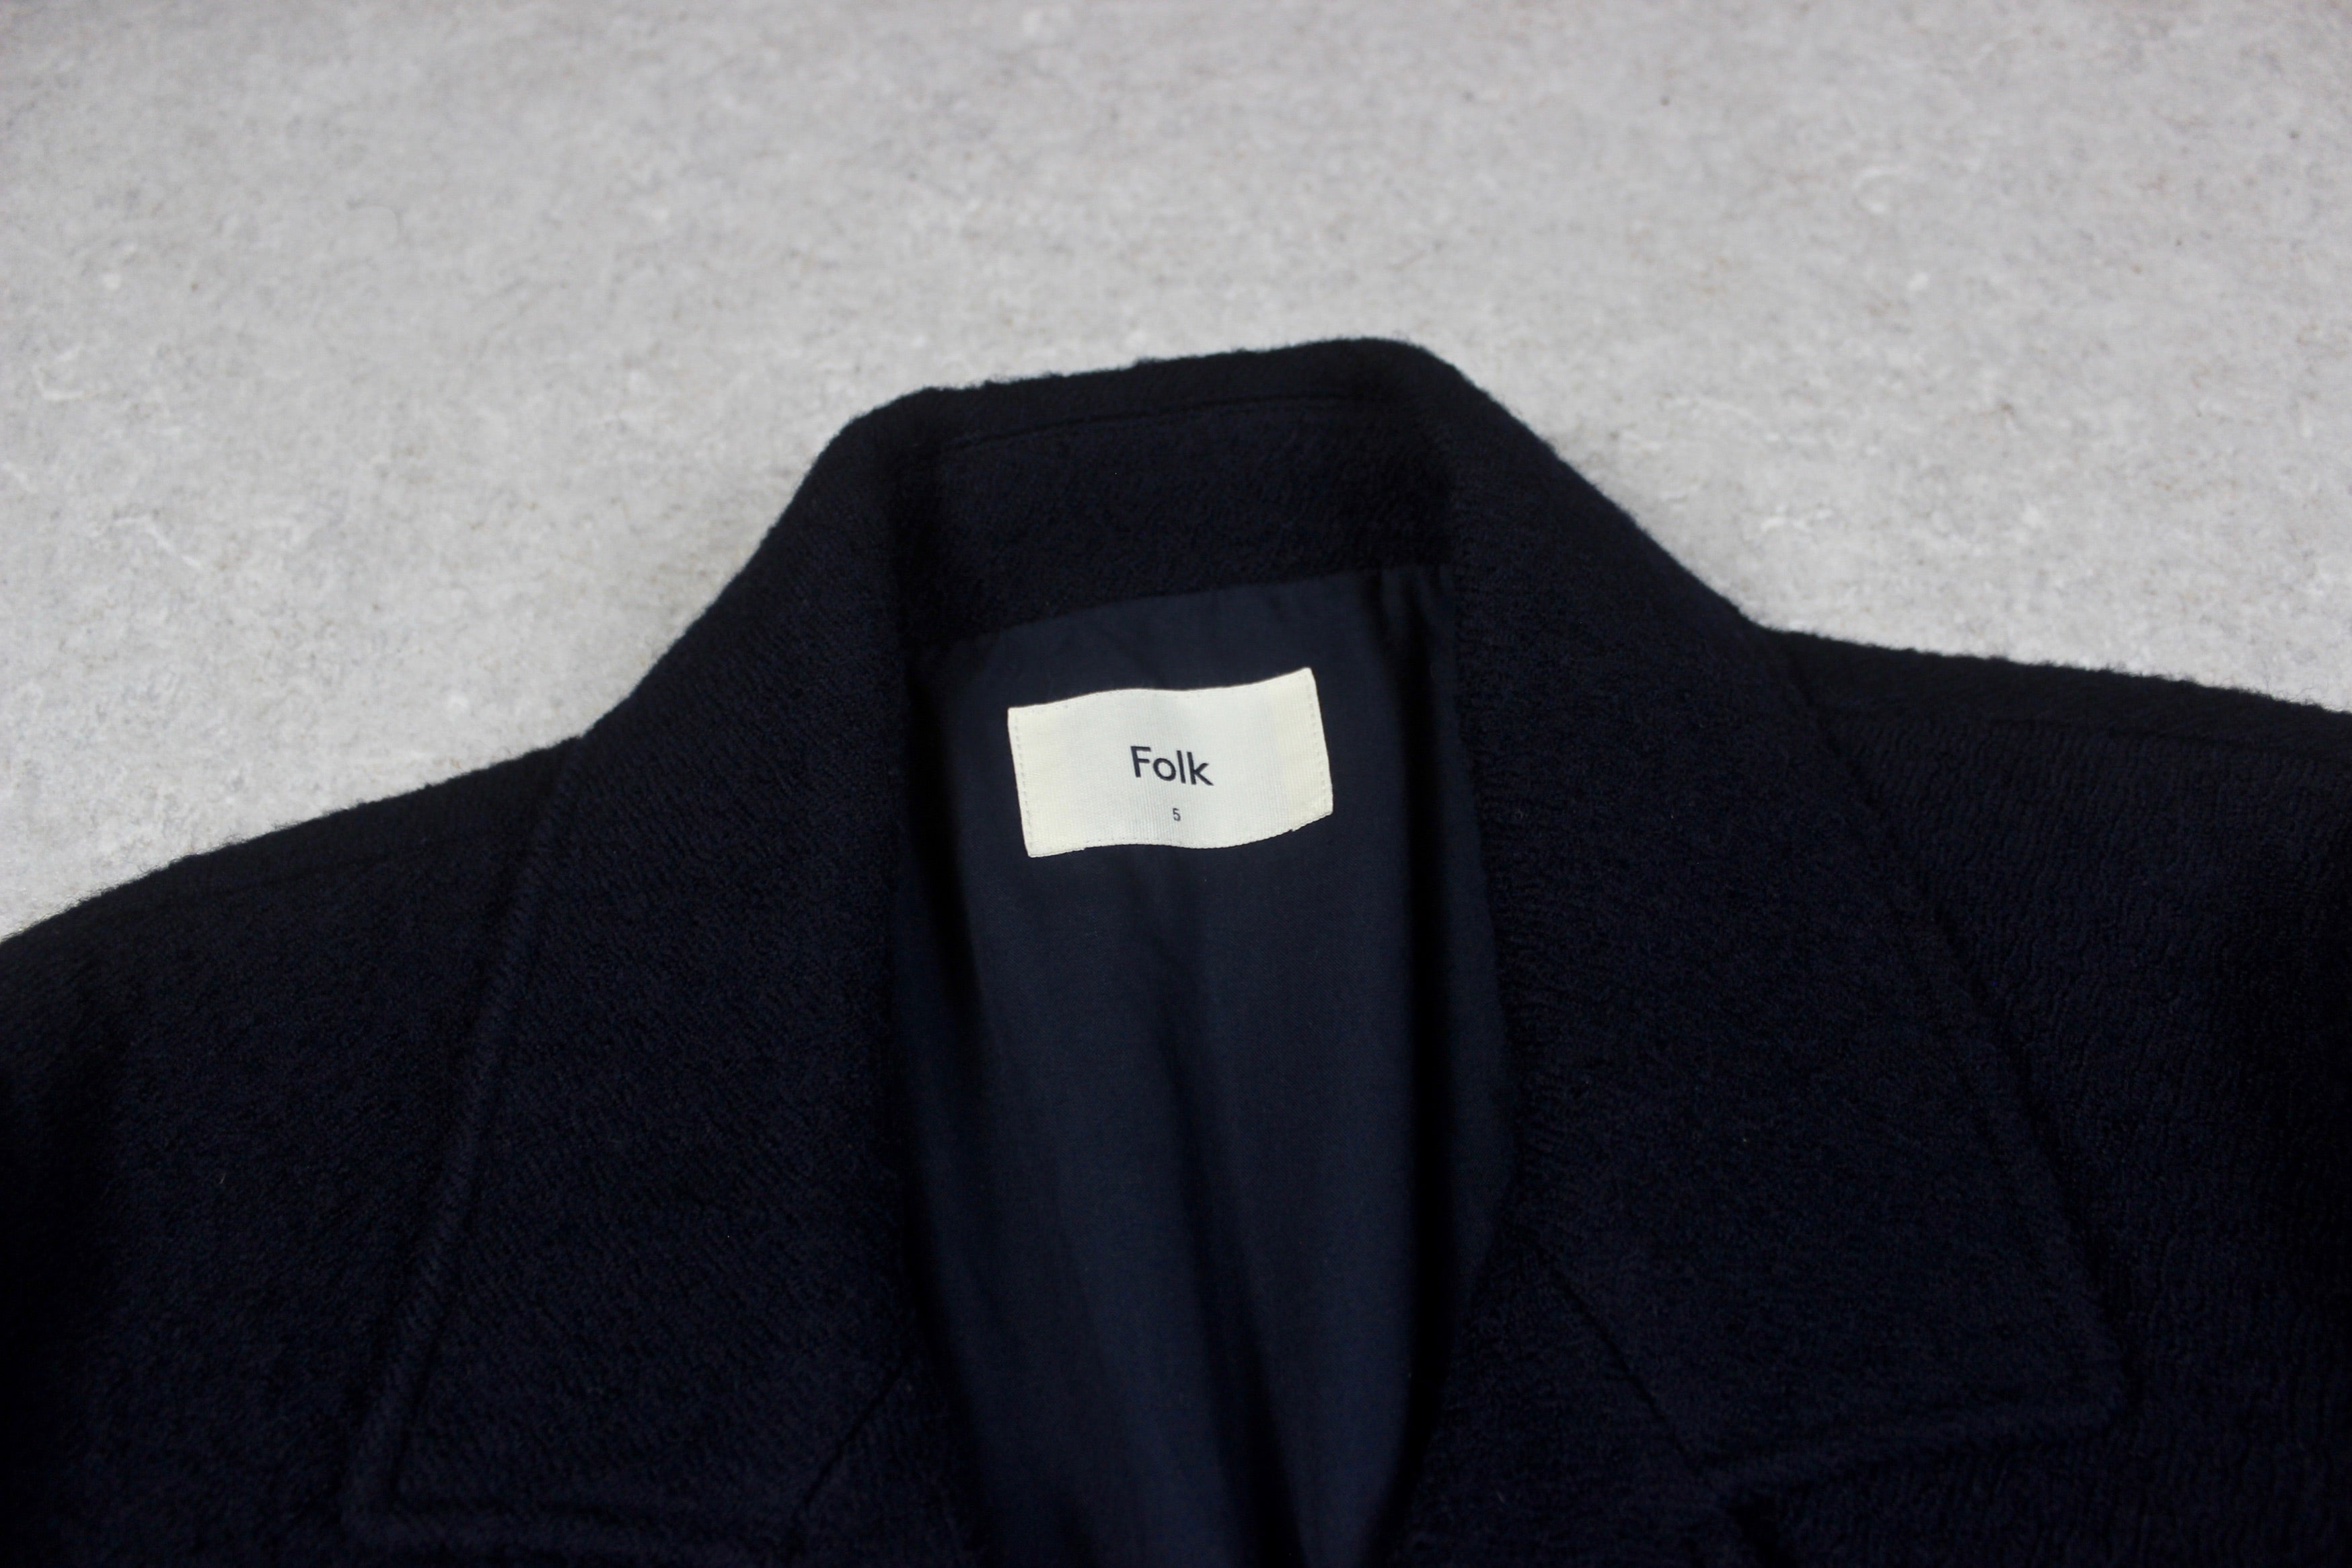 Folk - Knit Jacket - Black - 5/Extra Large